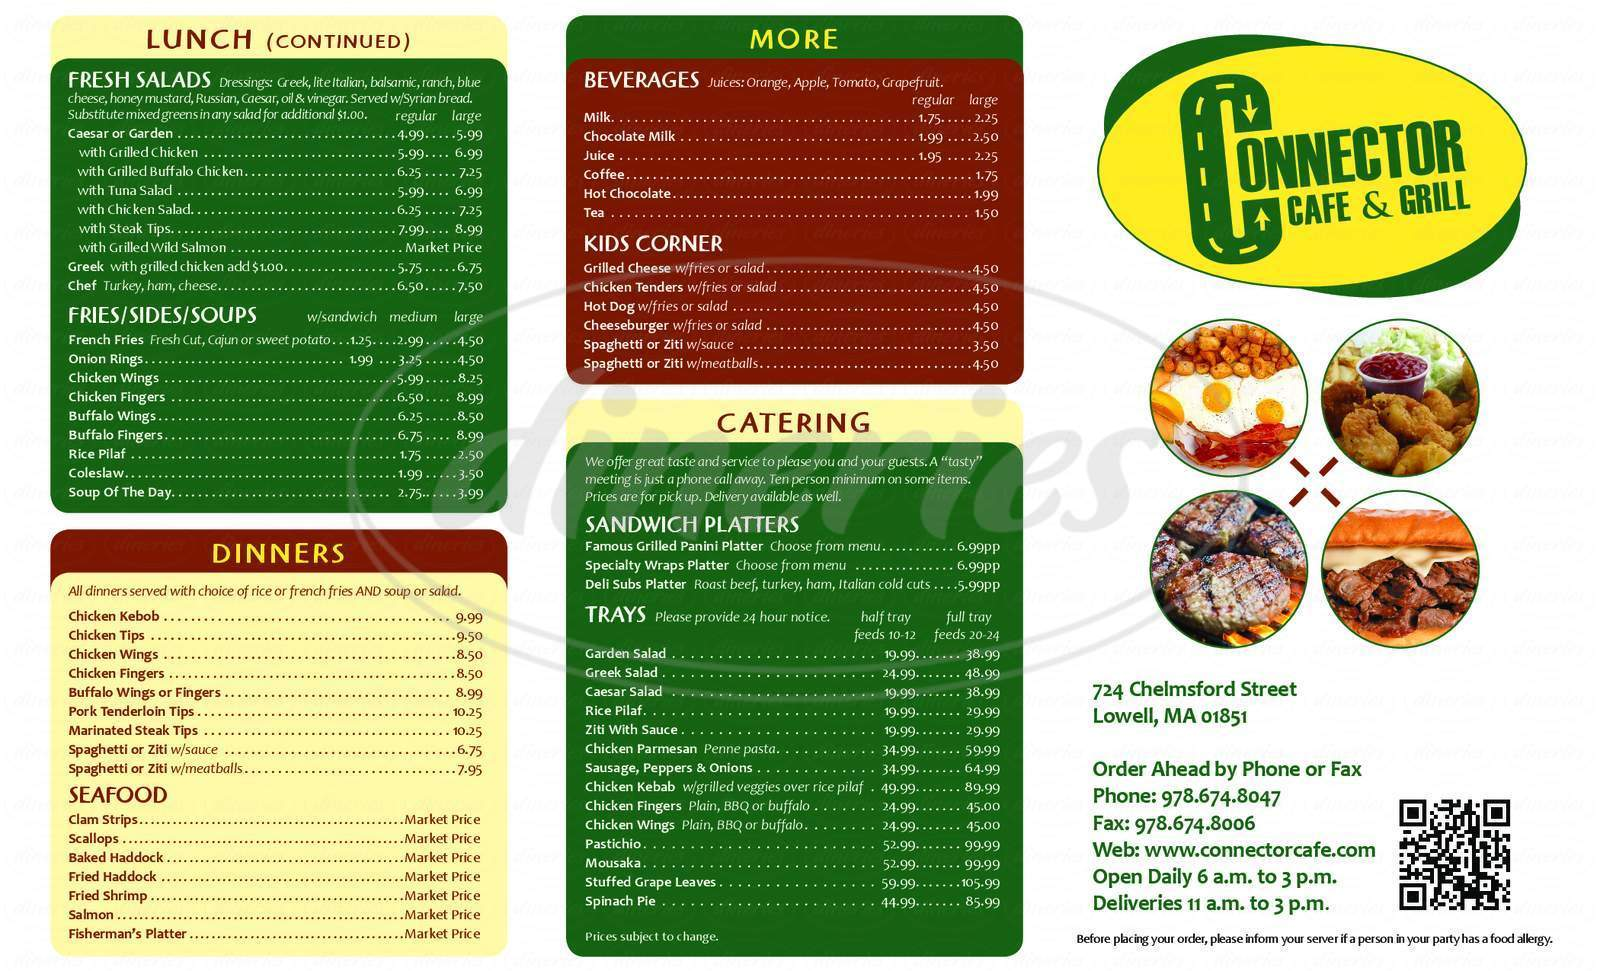 menu for Connector Cafe & Grill